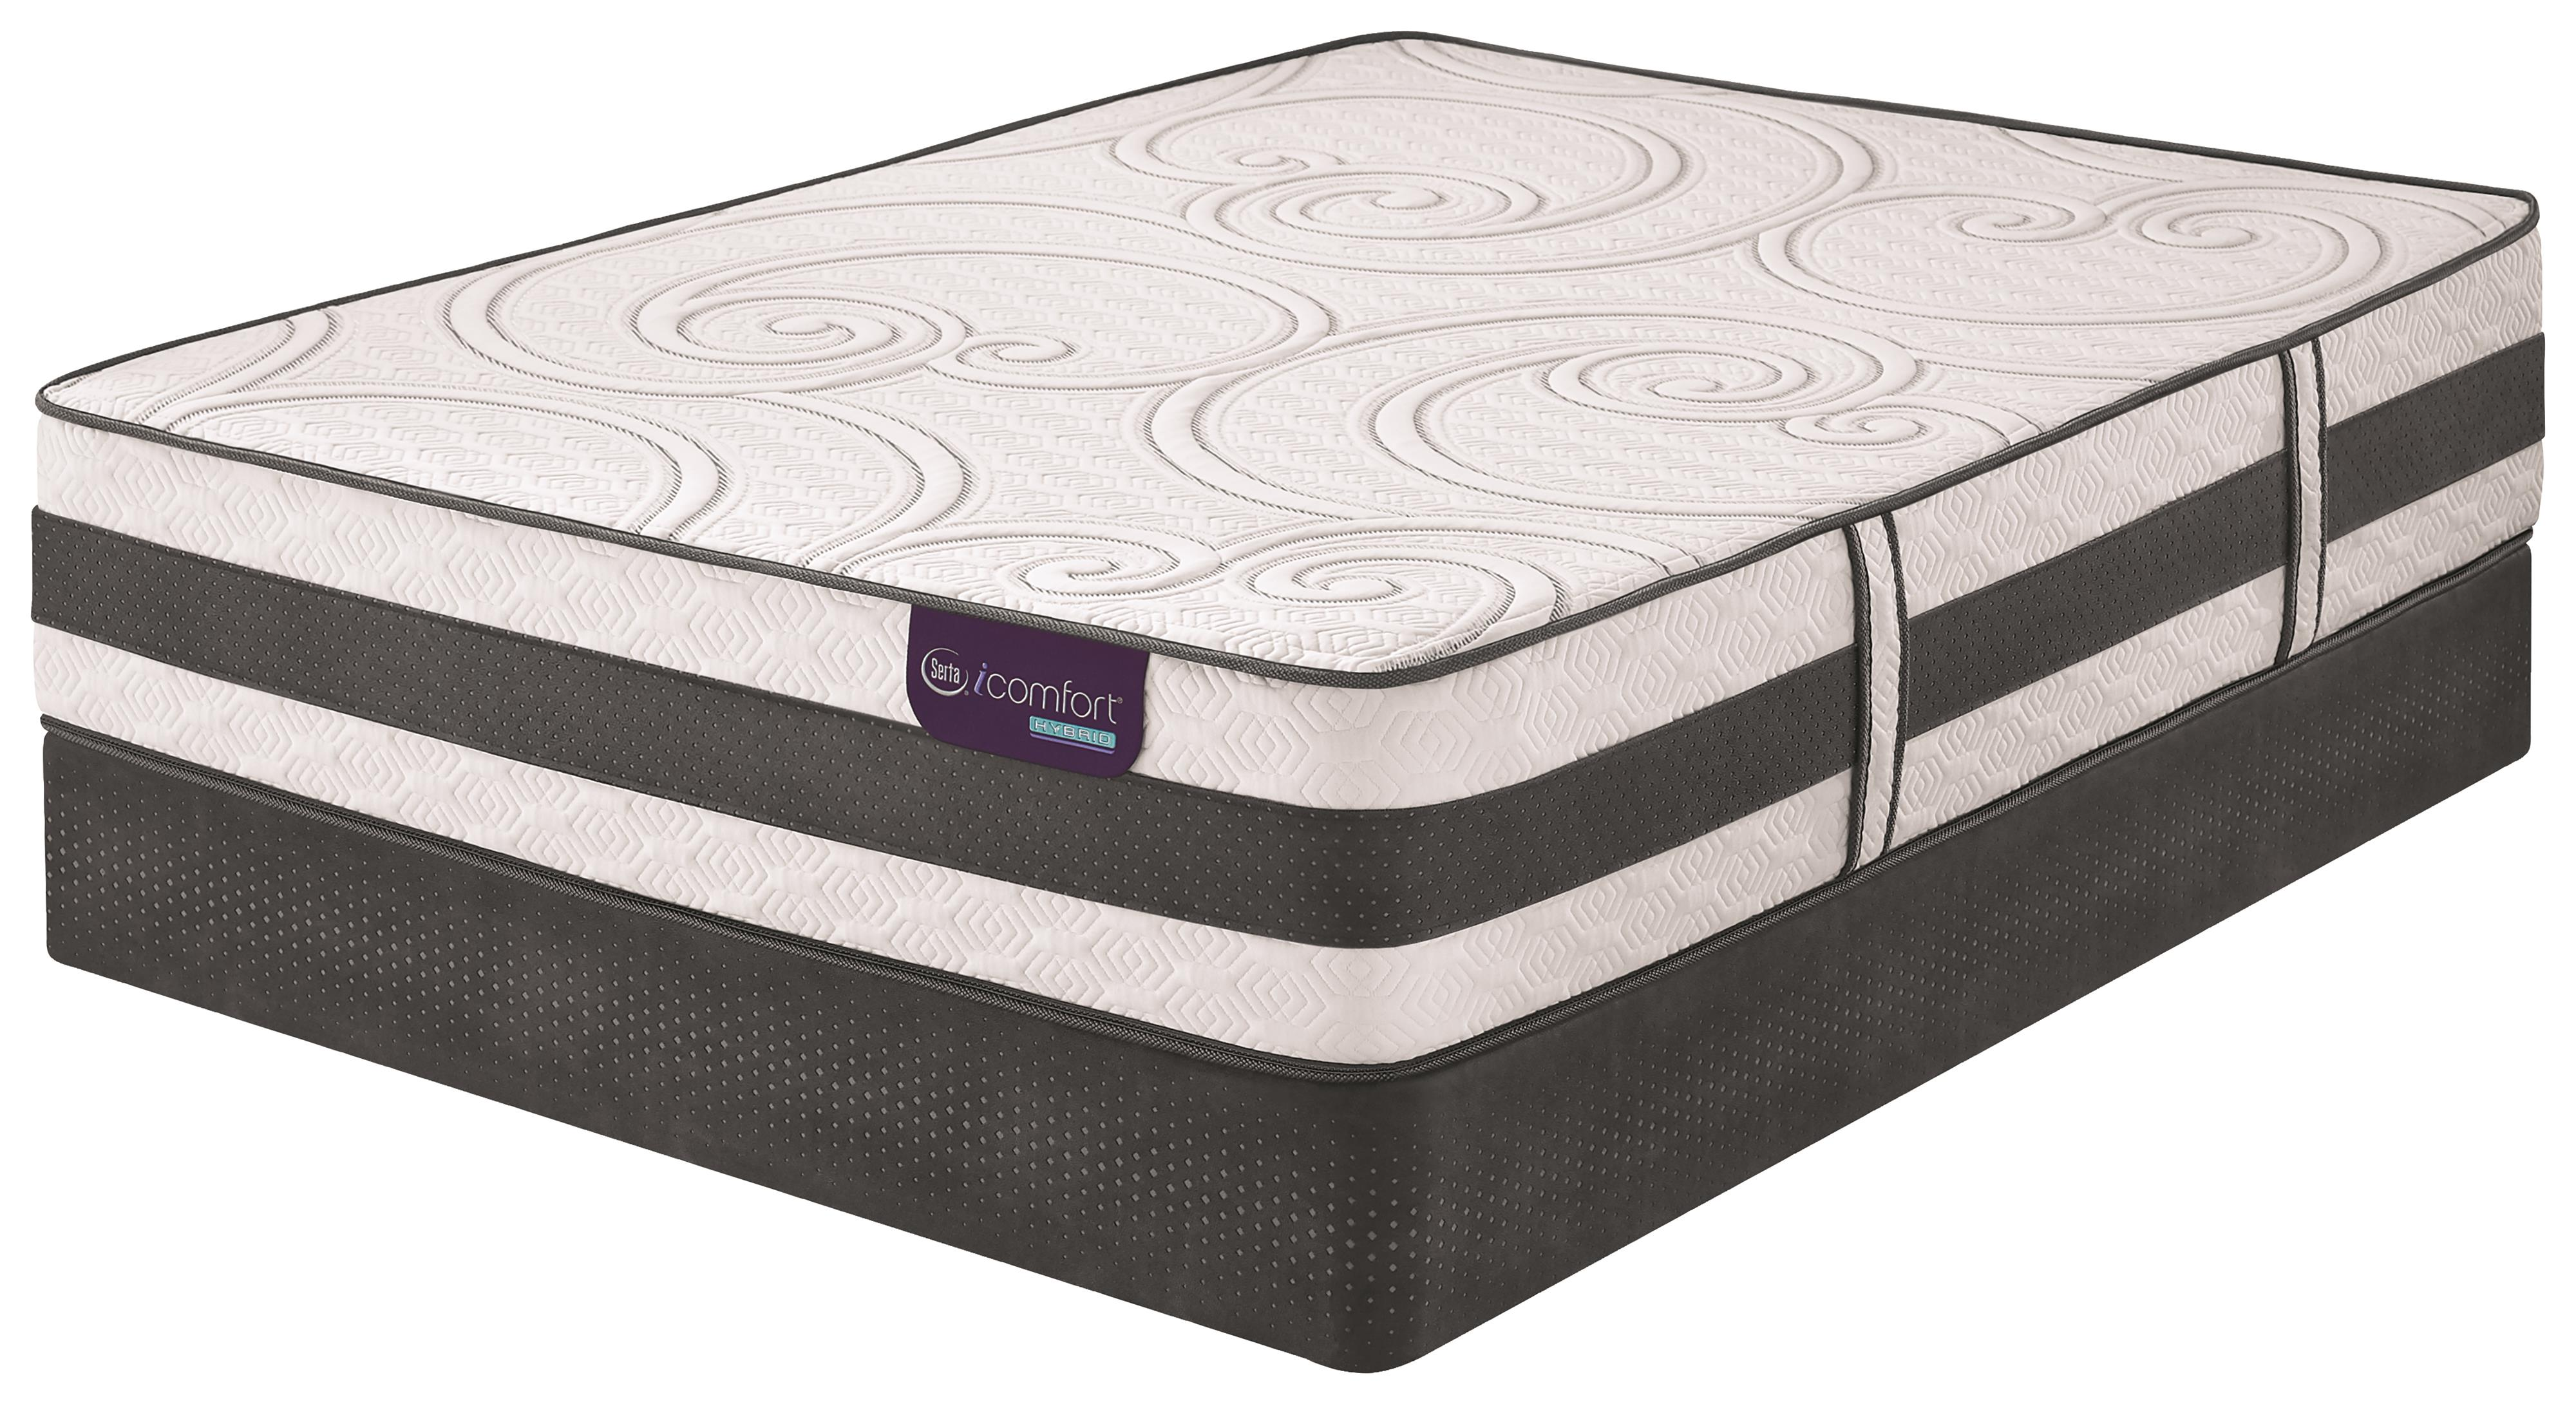 Serta iComfort Hybrid Visionaire Queen Firm Hybrid Mattress Set - Item Number: VisionaireF-Q+StabL-Base-Q